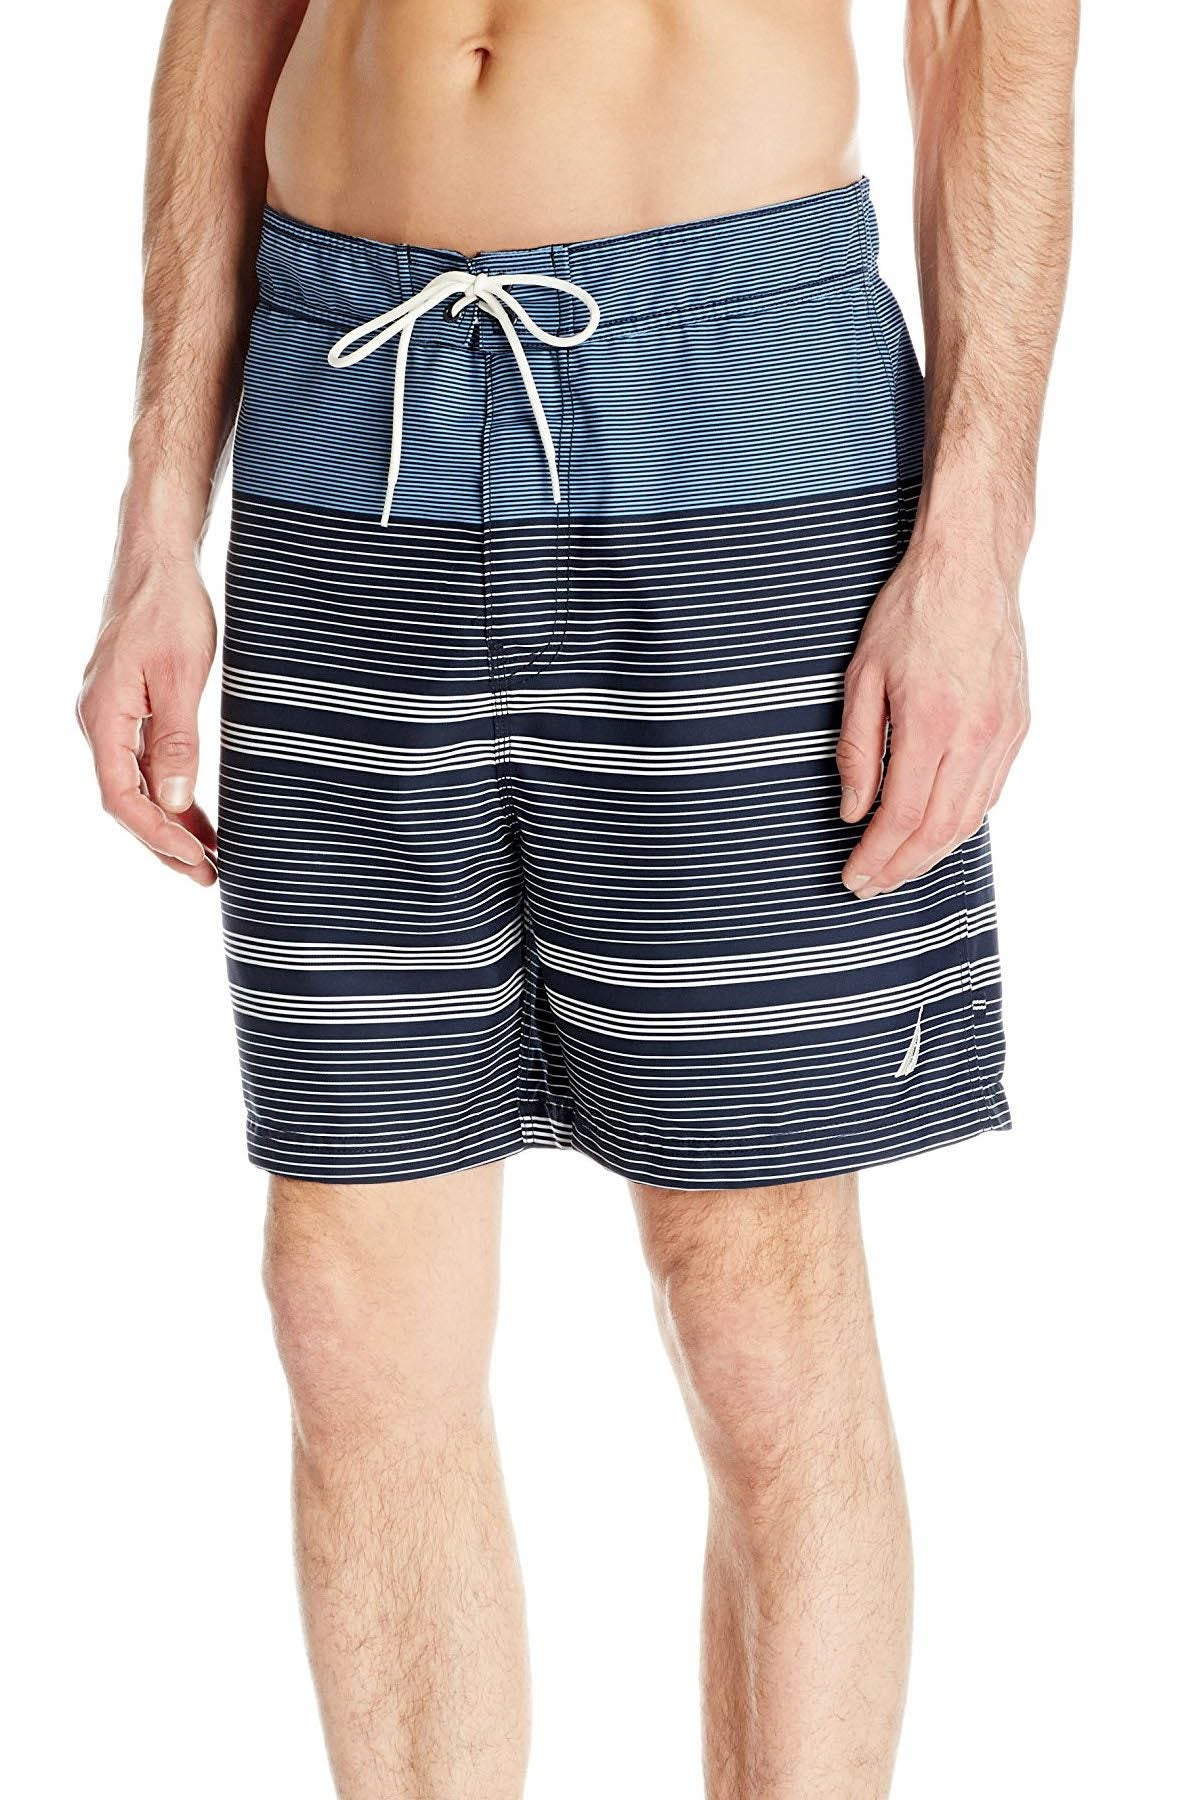 Nautica Della-Robbia-Blue Quick Dry Engineered Striped Swim Trunk